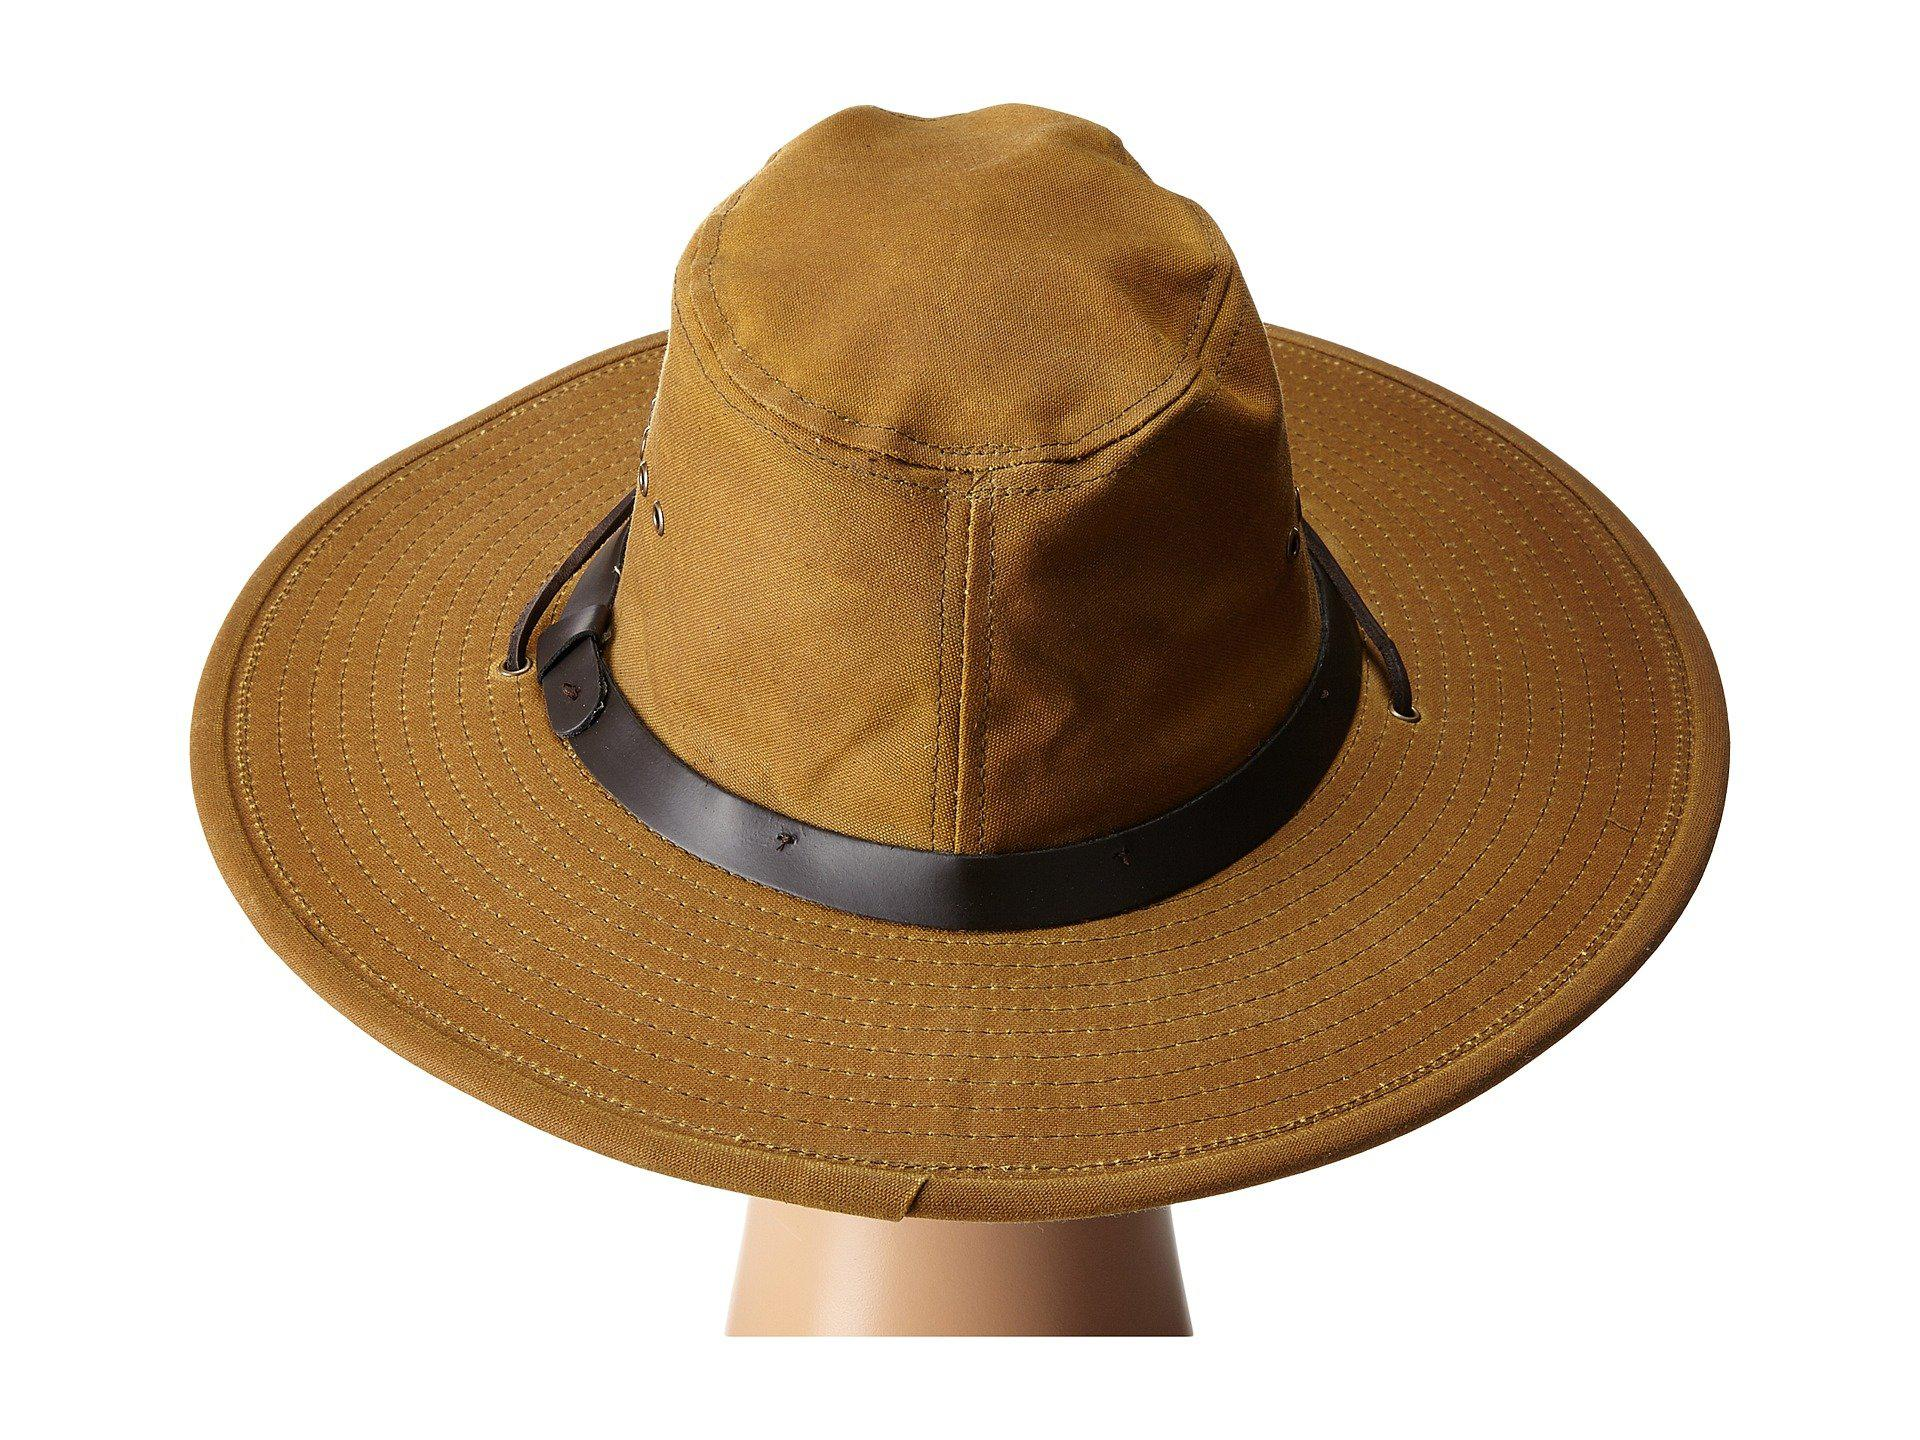 Filson Tin Cloth Bush Hat - Hat HD Image Ukjugs.Org aa94152a01